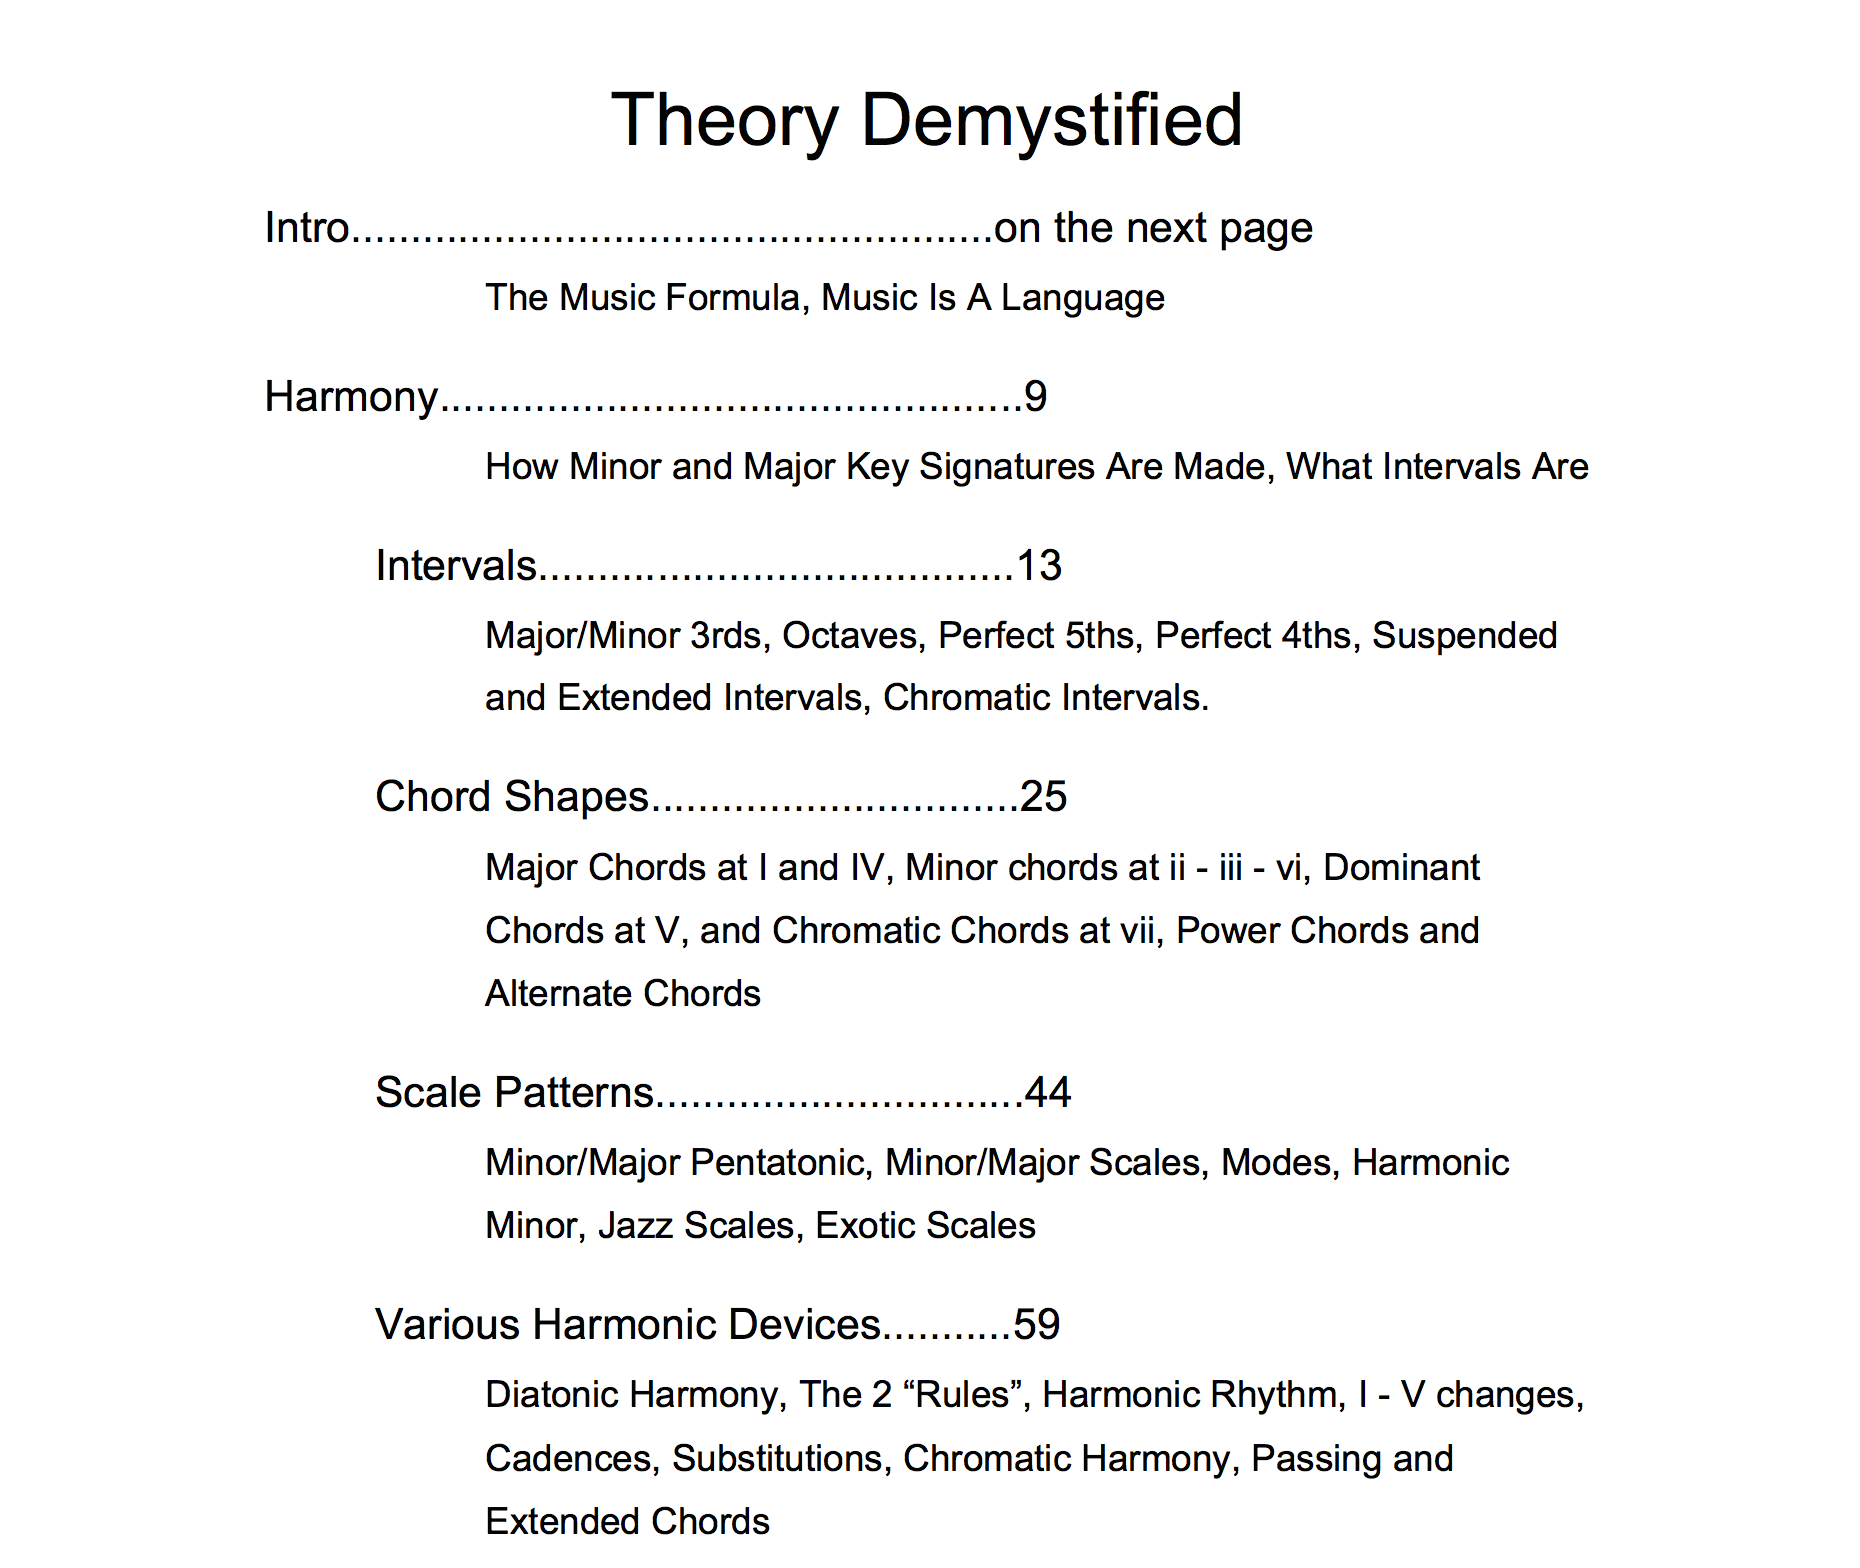 Theory Demystified Contents Page One Shopify